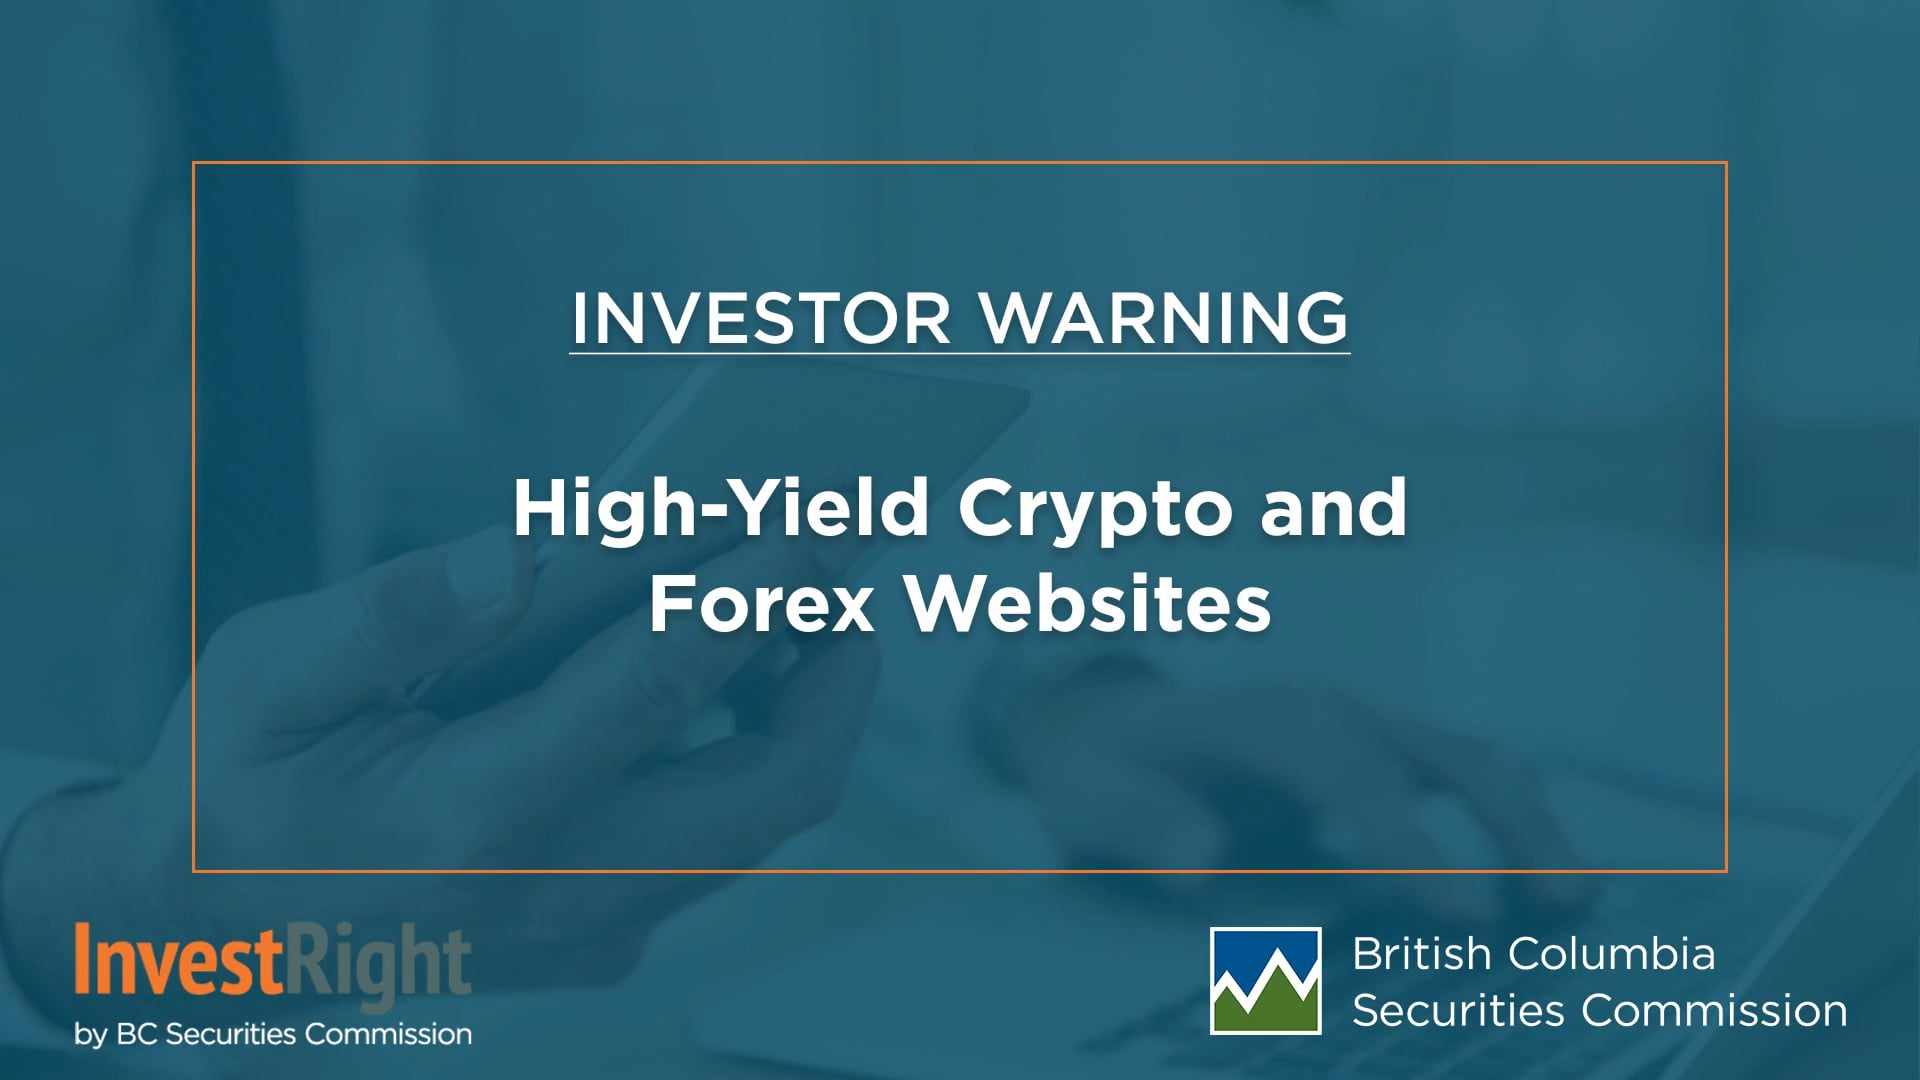 Investor Warning: High-Yield Crypto and Forex Websites